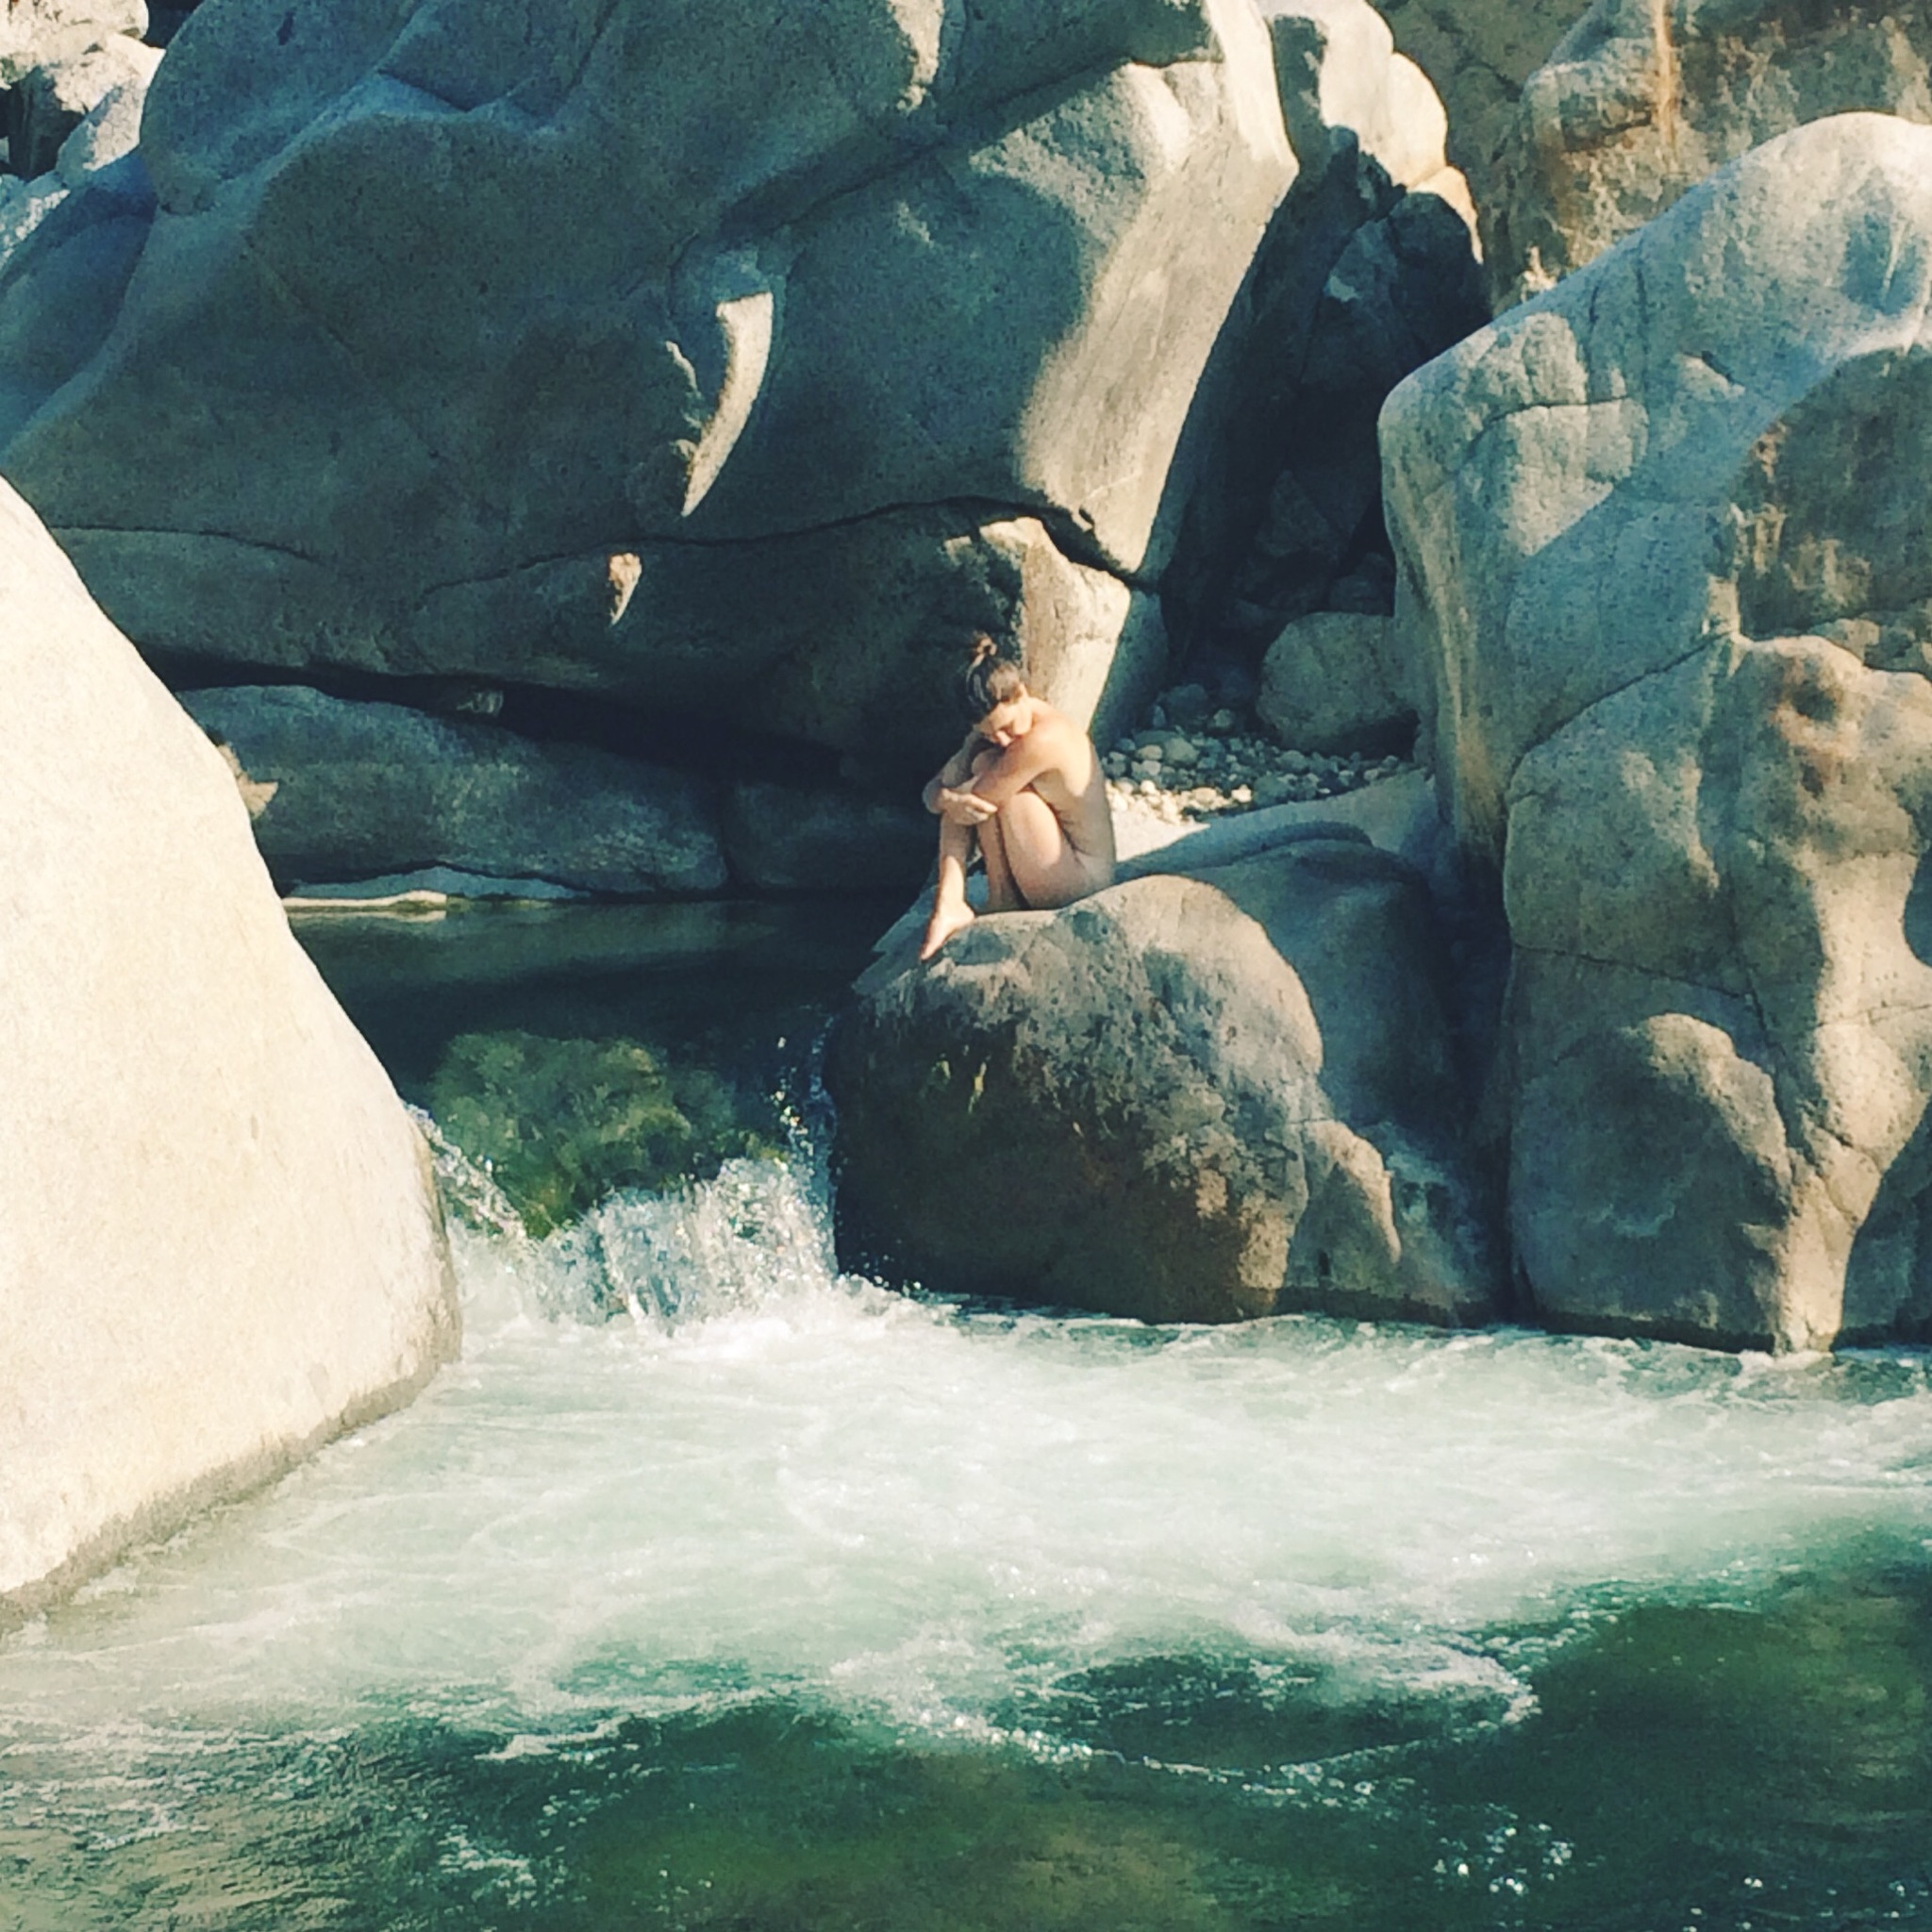 I never would have dreamed of being naked in public back then. I still feel vulnerable being naked at the river in the summertime now, but the feeling of that mountain water on my skin is too ecstatic and freeing to resist and it always wins out over the lingering body shame.